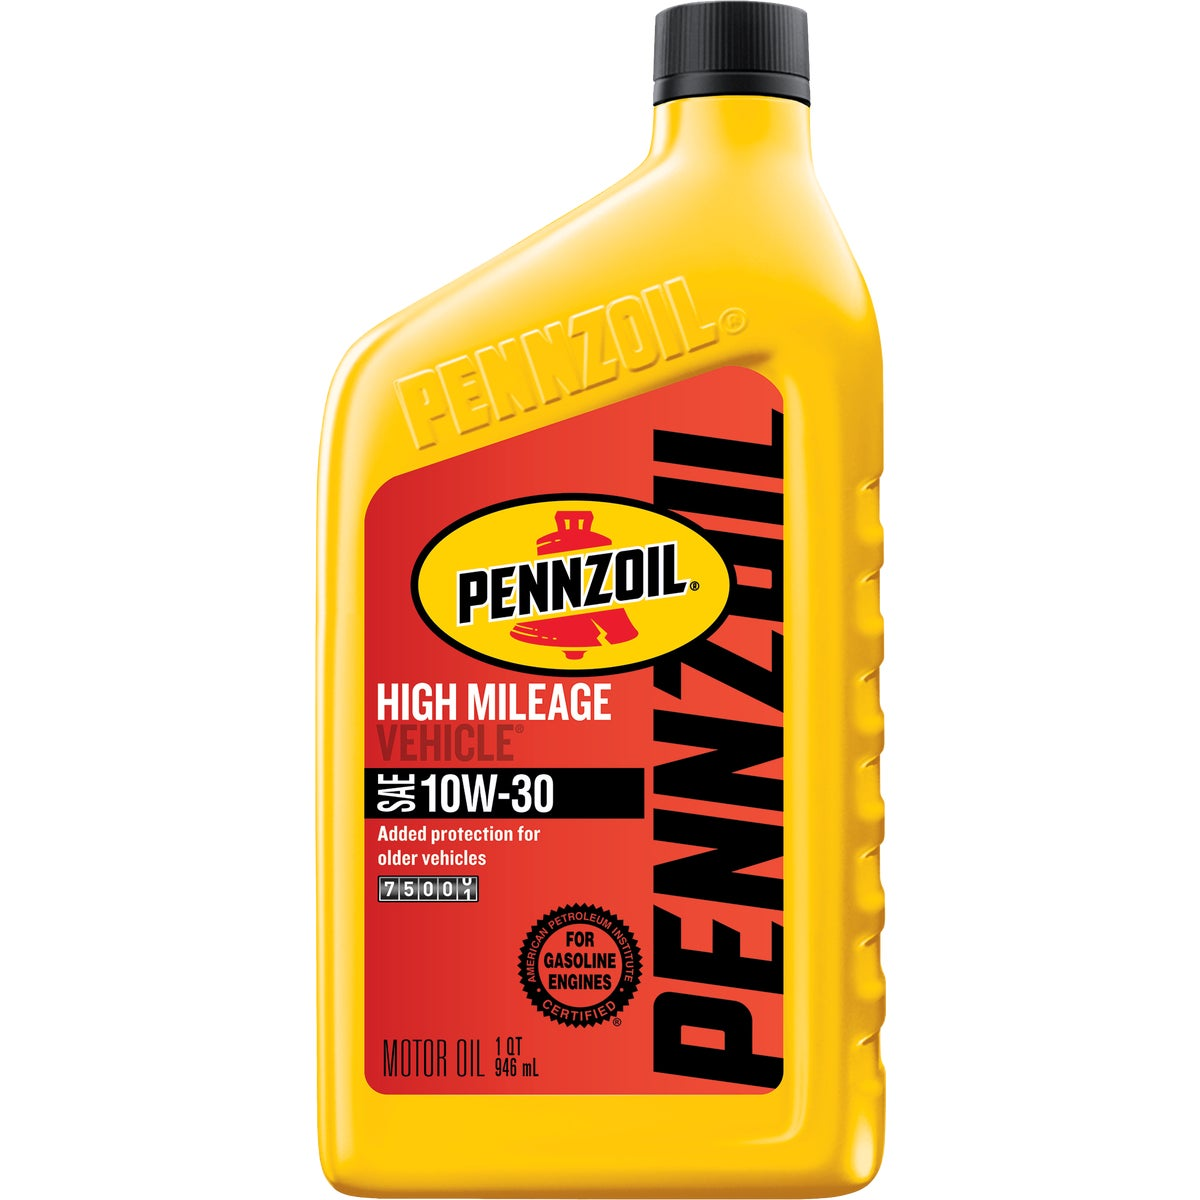 10W30 PENNZOIL MOTOR OIL - 550022812 by Sopus Products/ Lub